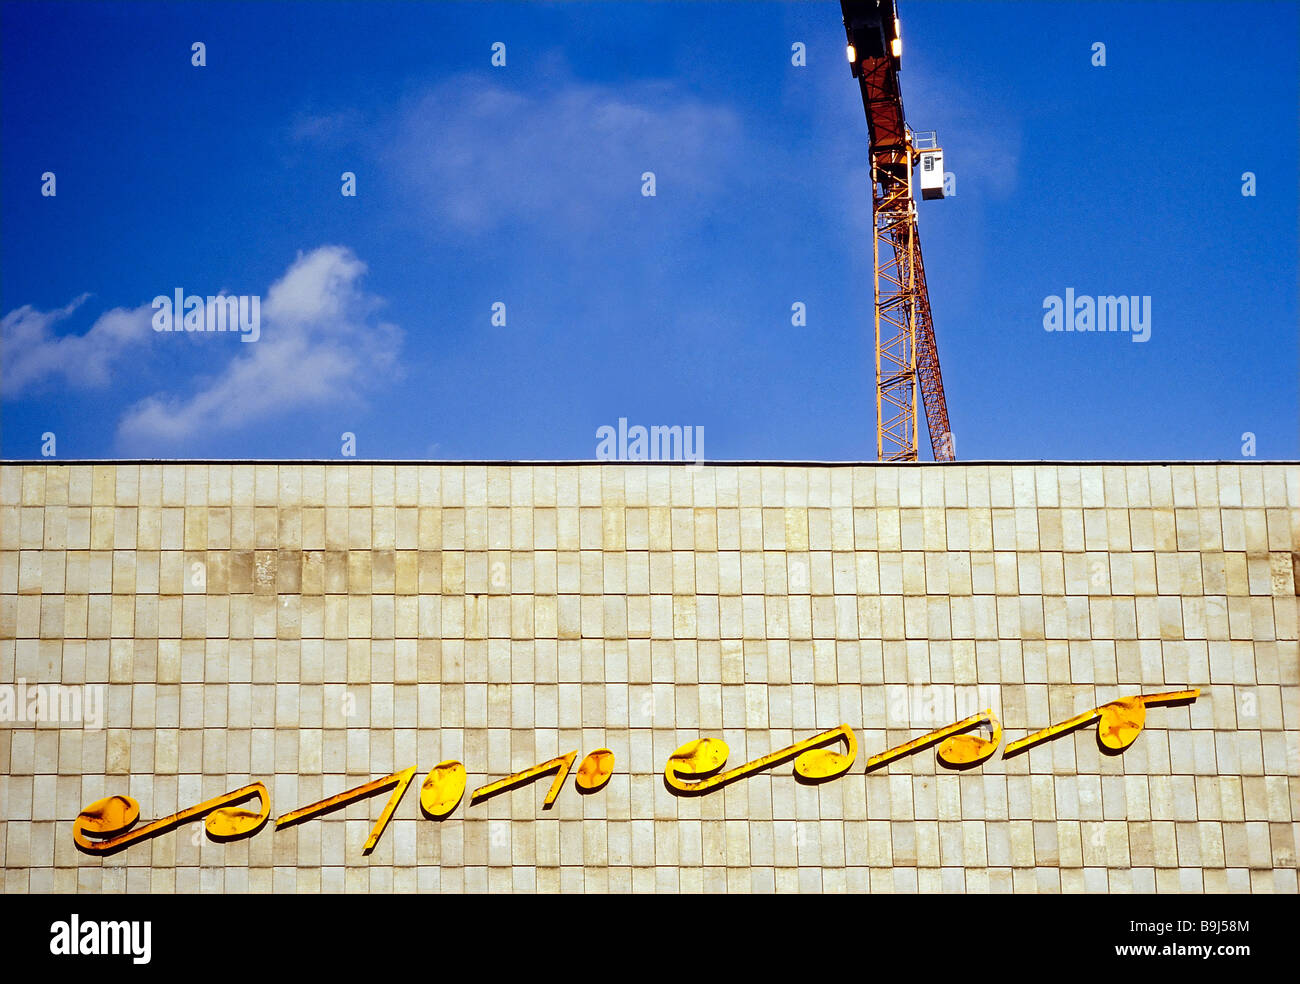 Espresso signage from the 1950's on a building facade, Dresden, Saxony, Germany, Europe - Stock Image